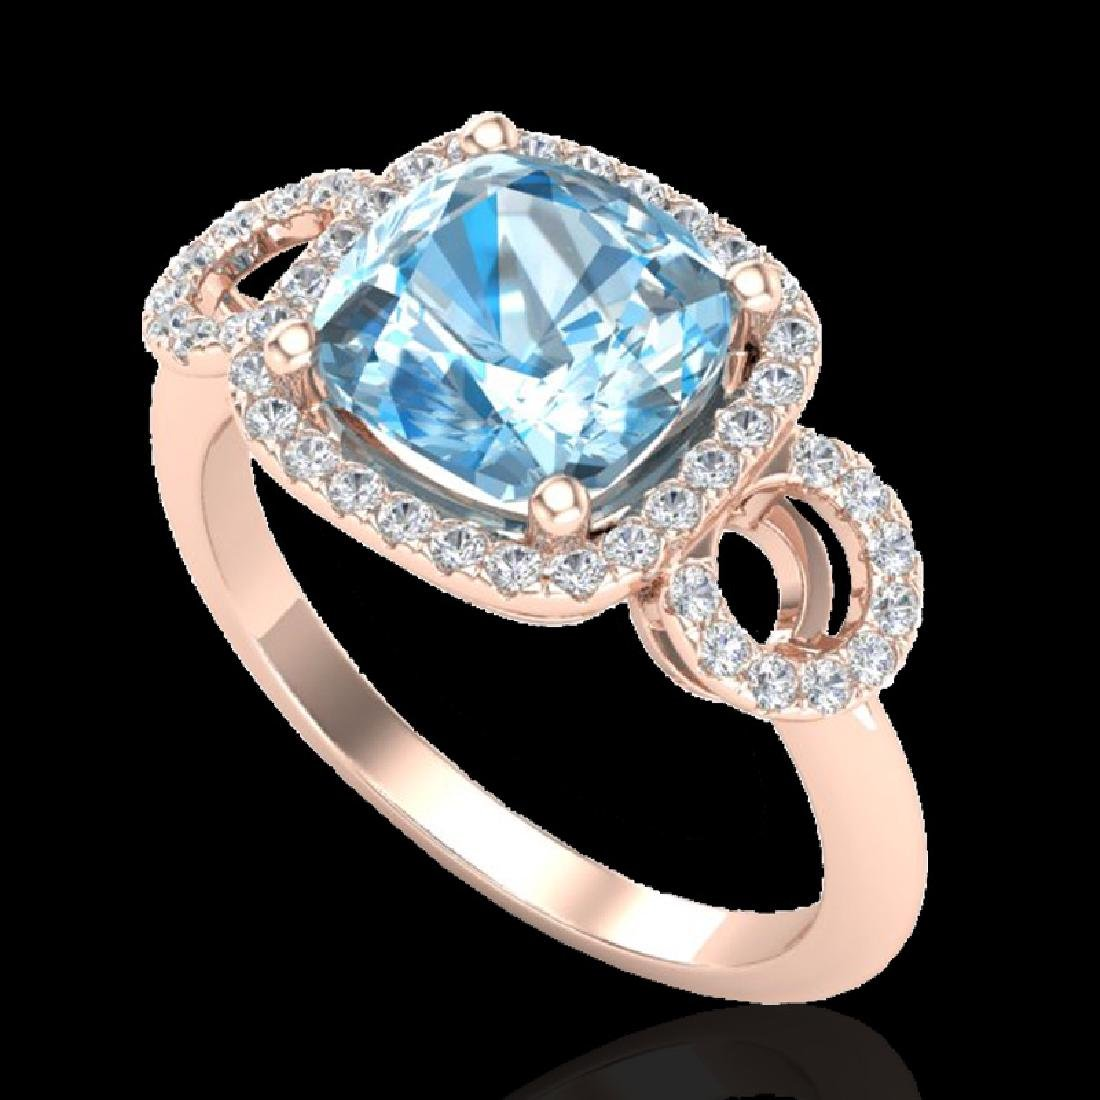 3.75 CTW Topaz & Micro VS/SI Diamond Ring 14K Rose Gold - 2